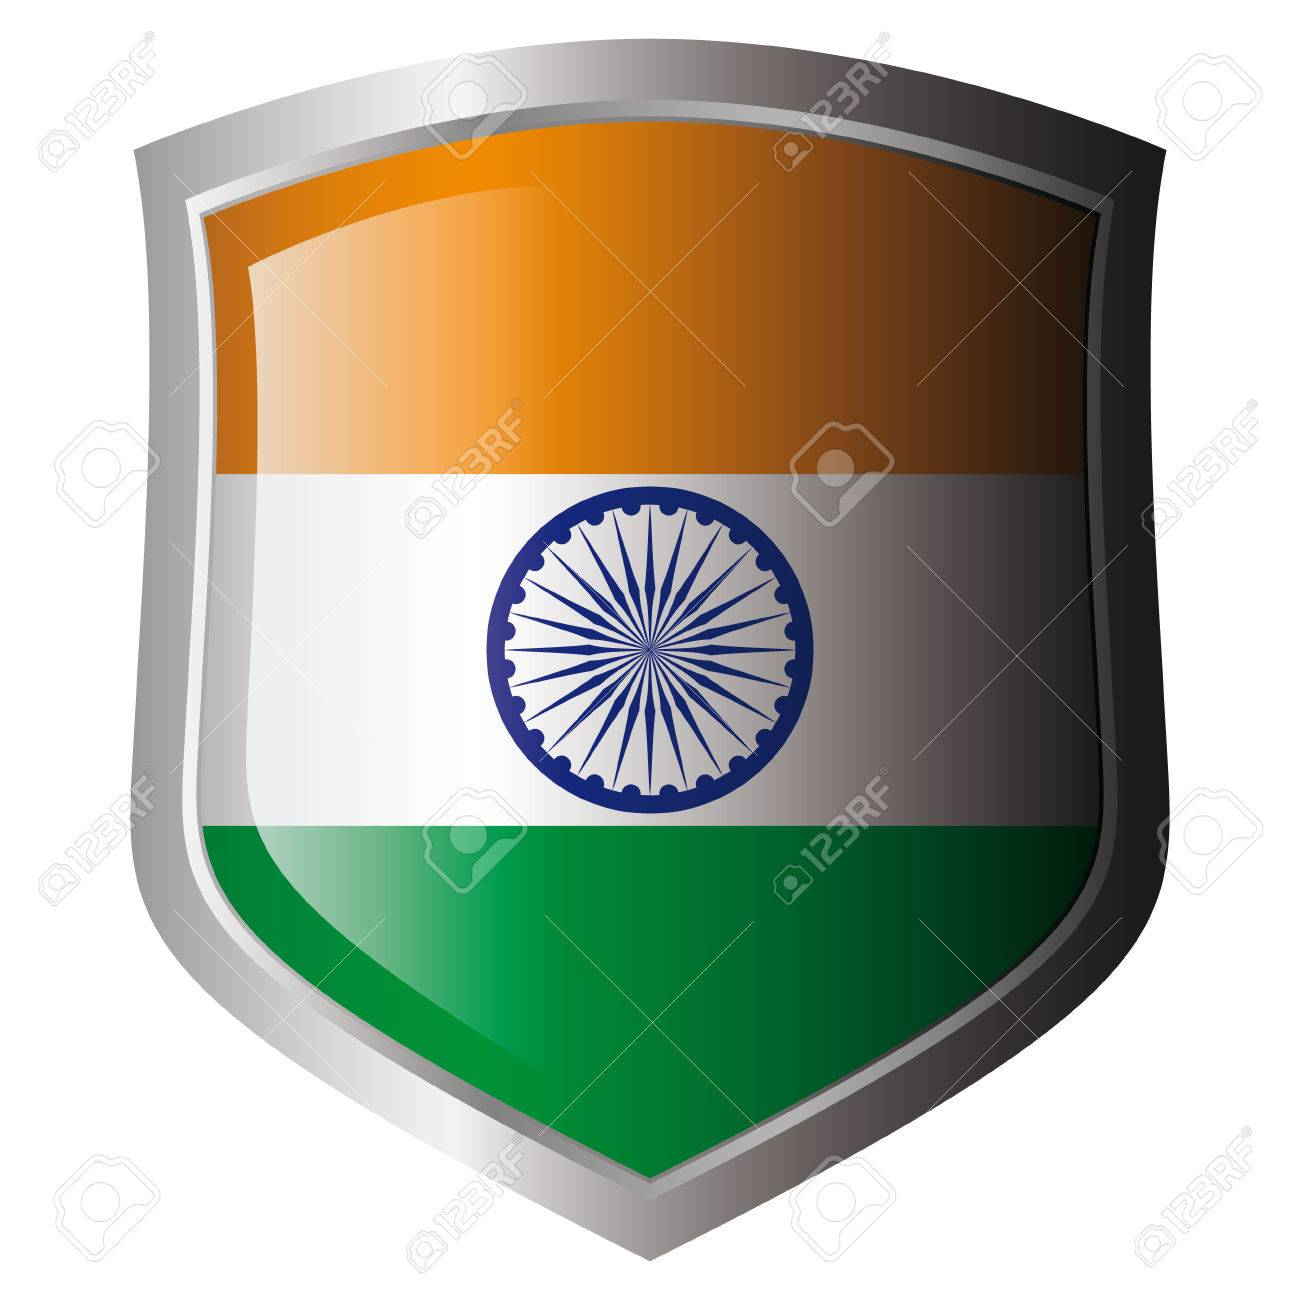 india vector illustration flag on metal shiny shield. Collection of flags on shield against white background. Isolated object. Stock Vector - 6030208